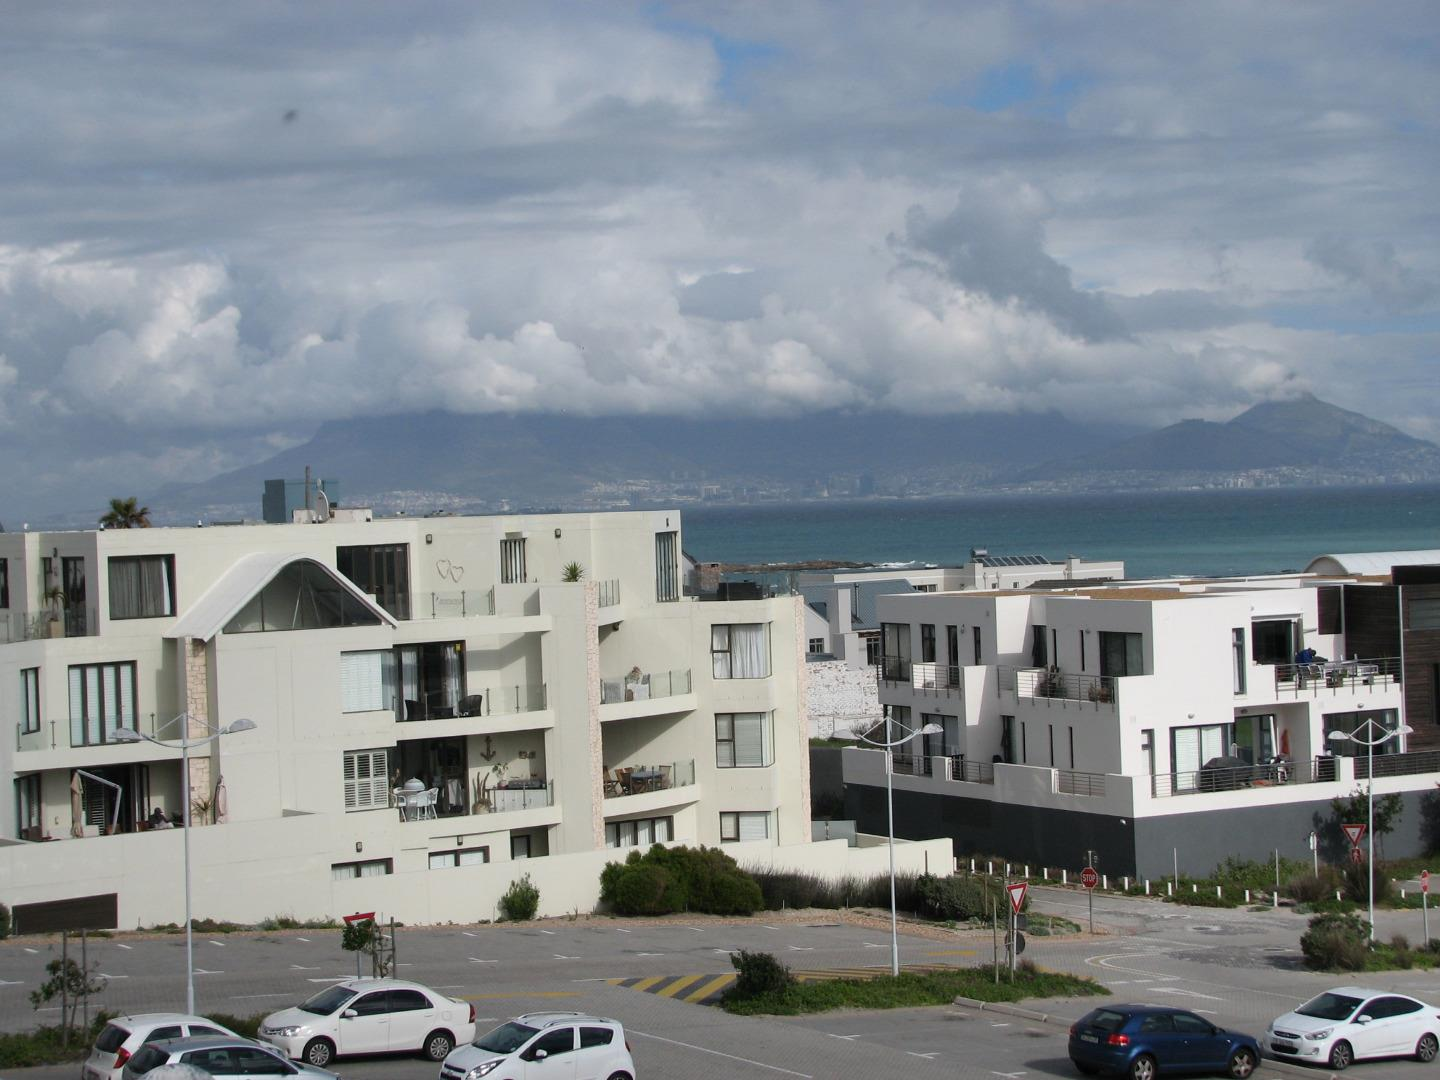 1 Bedroom  Apartment for Sale in Blouberg - Western Cape